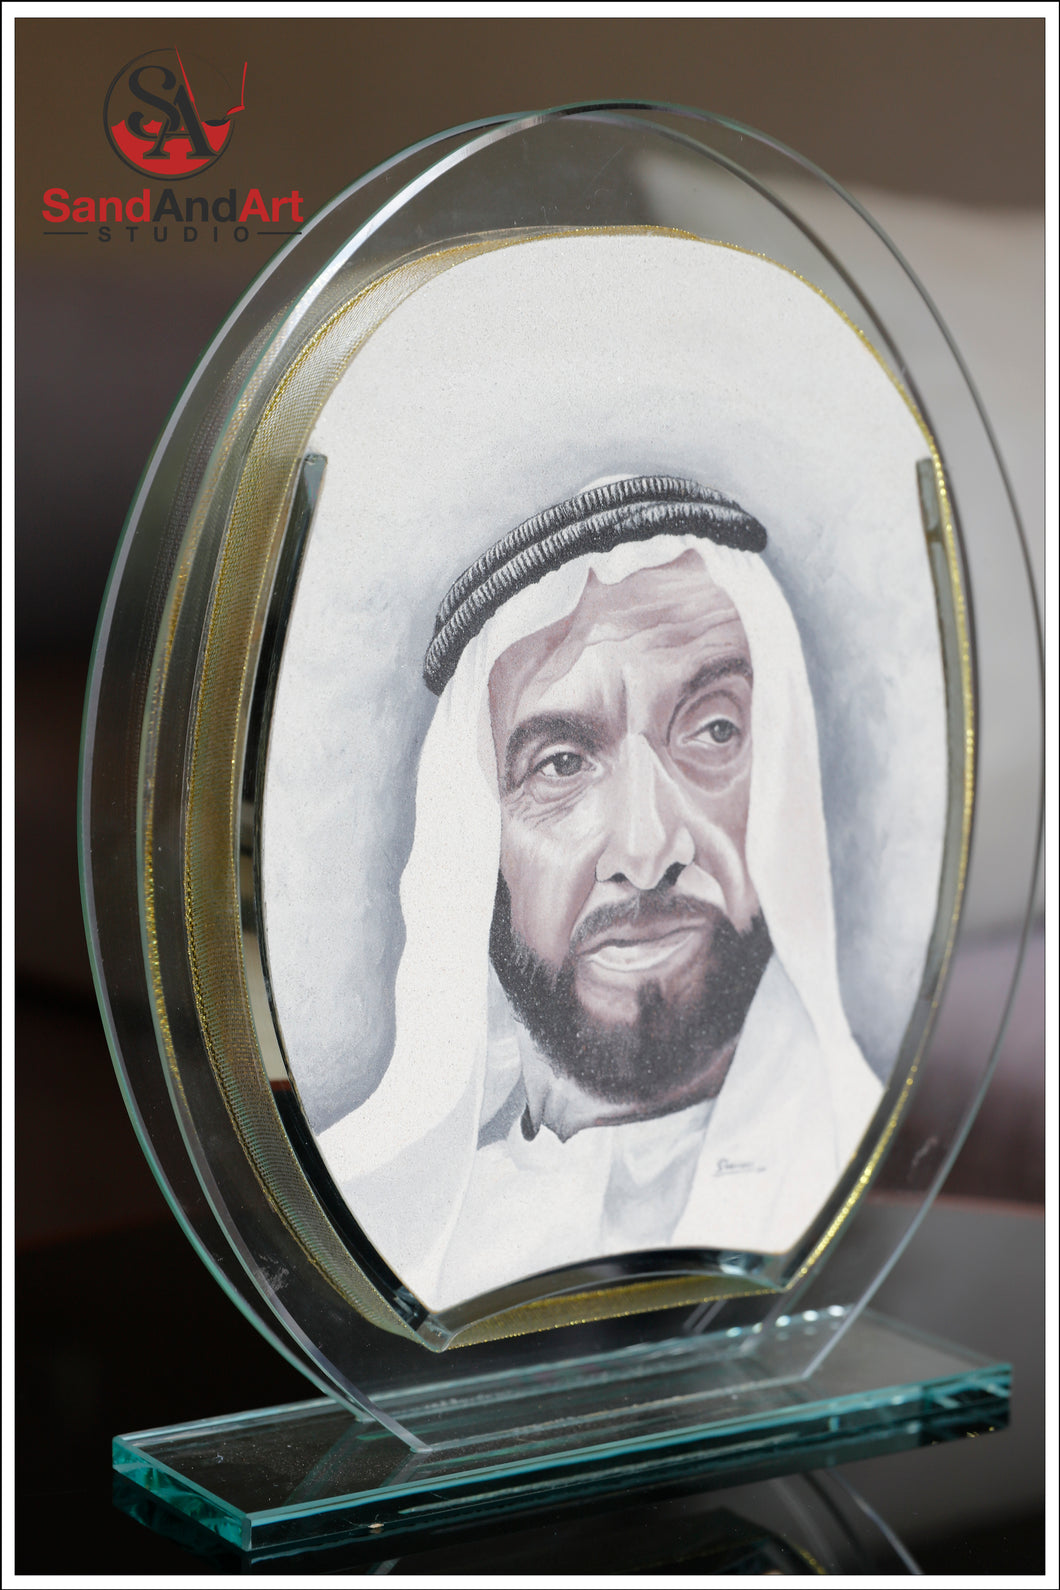 Personalize your Photo to Sand Portrait into Glass-Vase ( 7.0